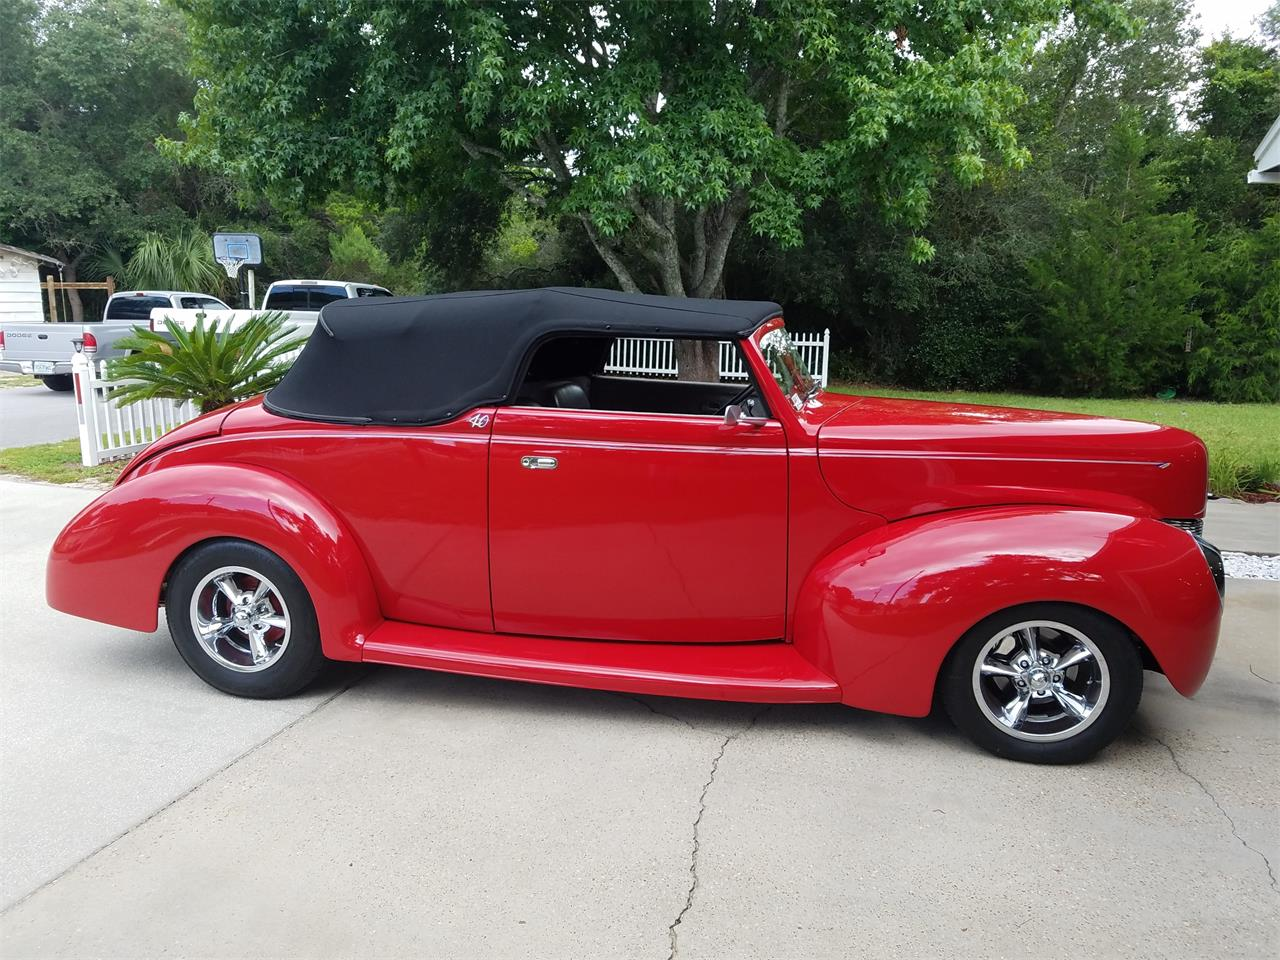 For Sale: 1940 Ford Convertible in Panama City Beach, Florida